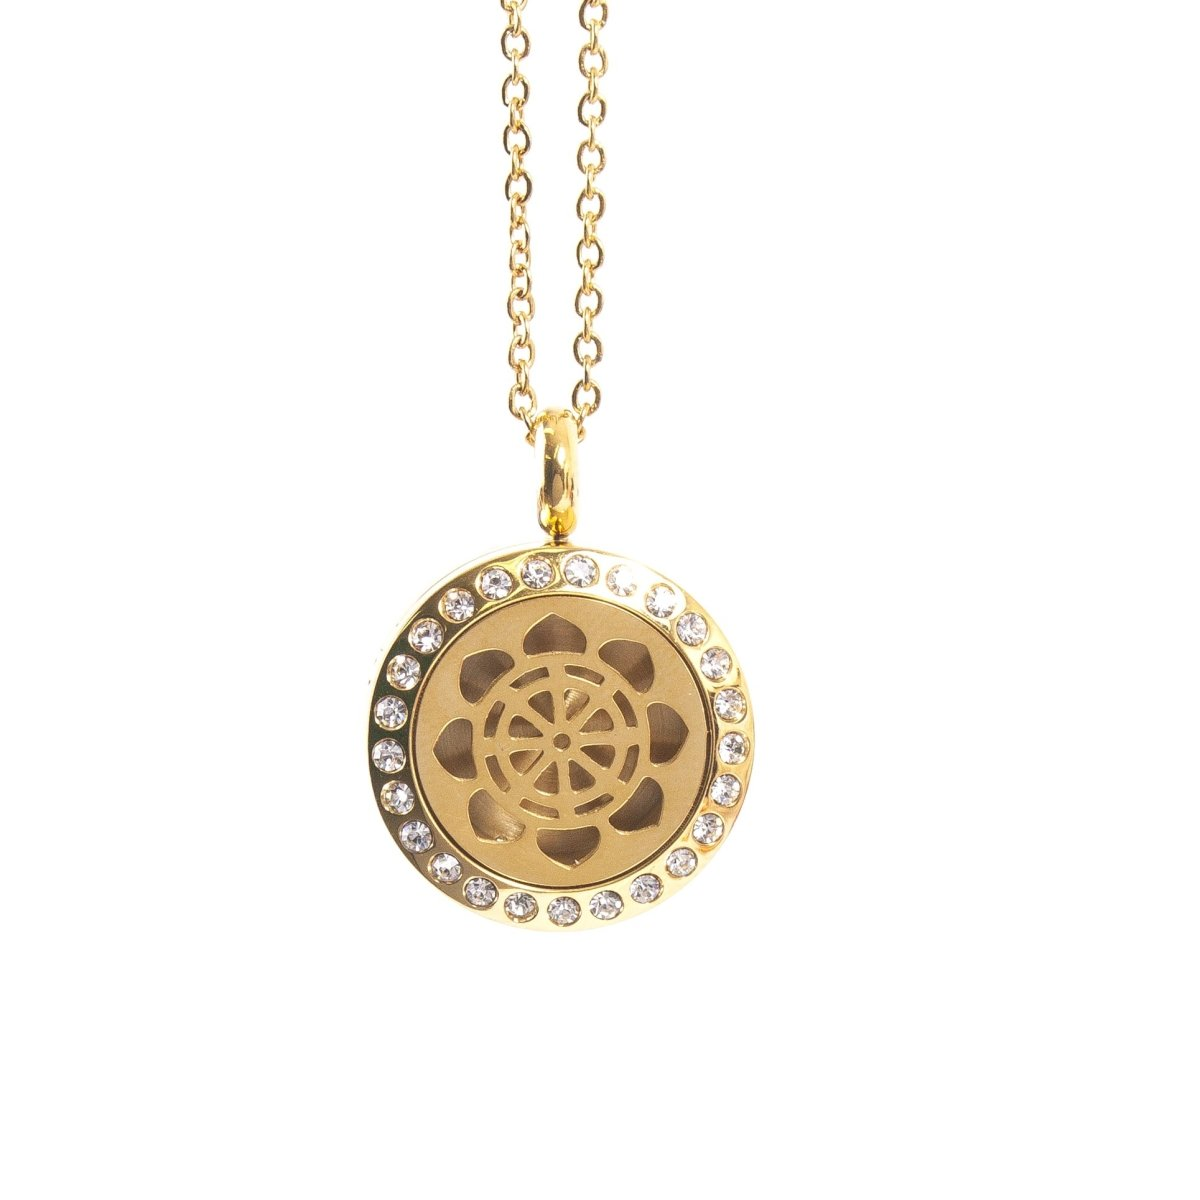 Dharma Wheel | Aromatherapy Oil Diffuser Gold Necklace Locket with Pad - Mystic Moments UK